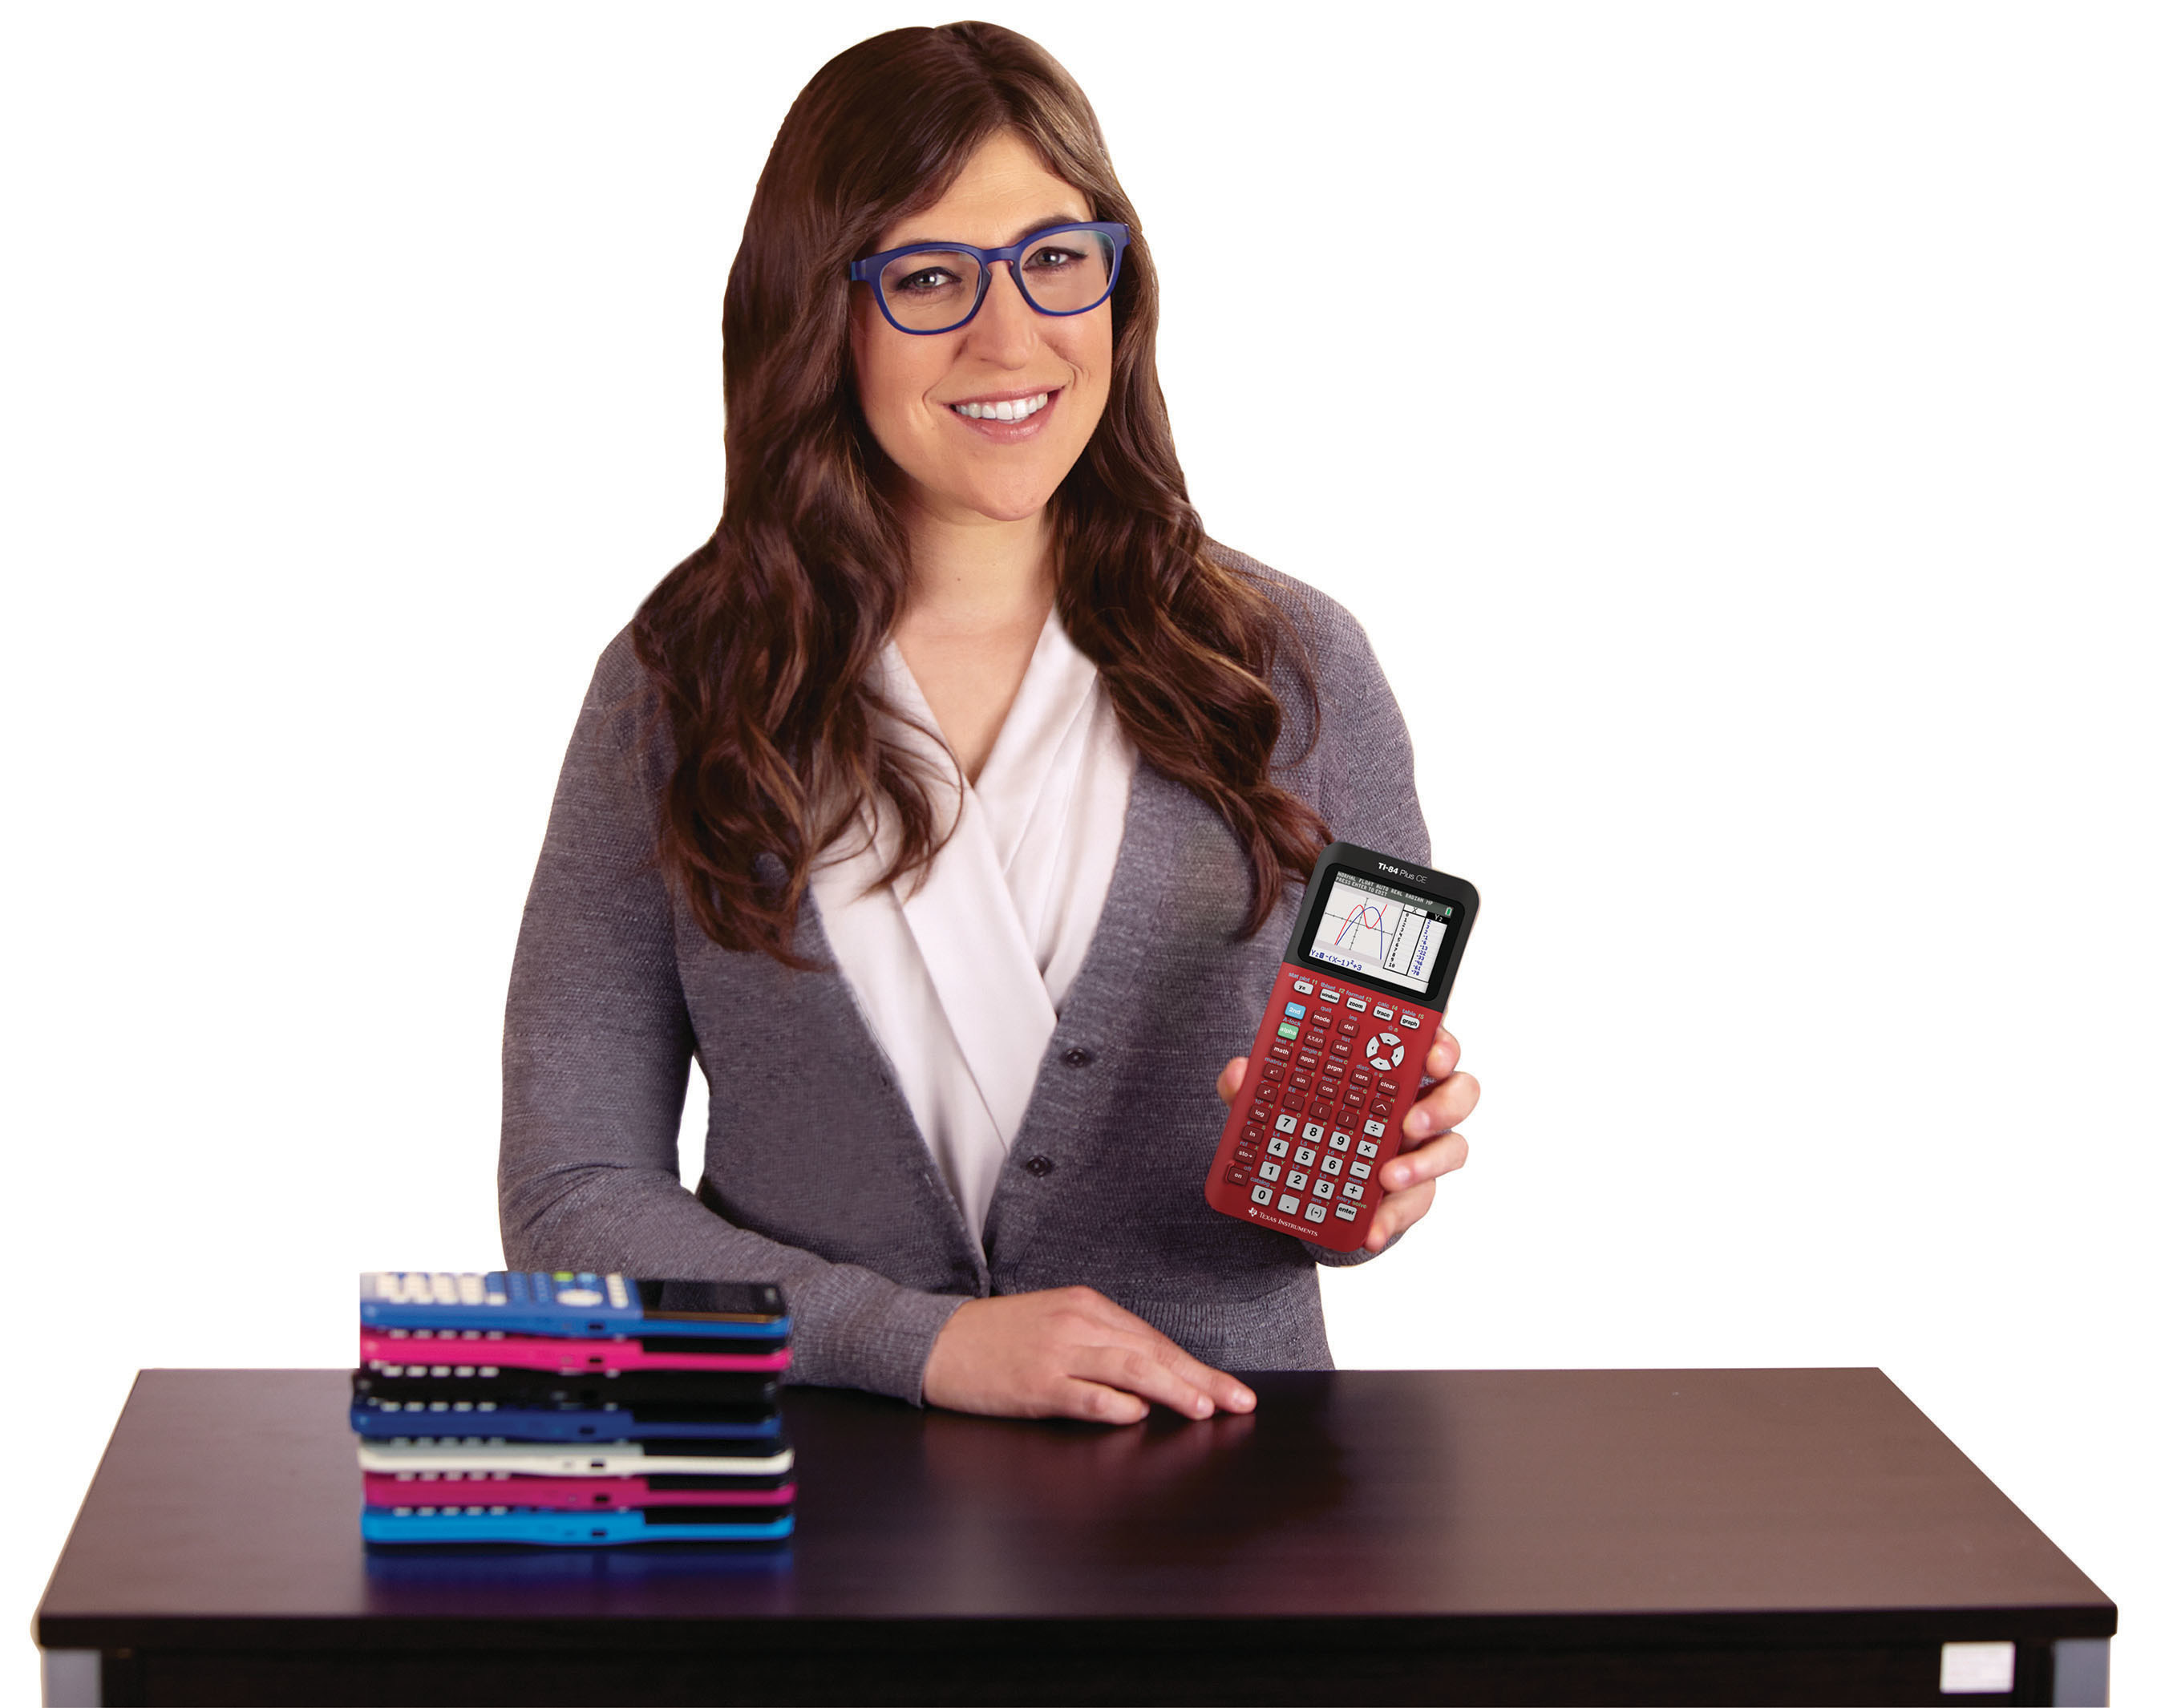 Bring a celebrity to school by showing your calculator love